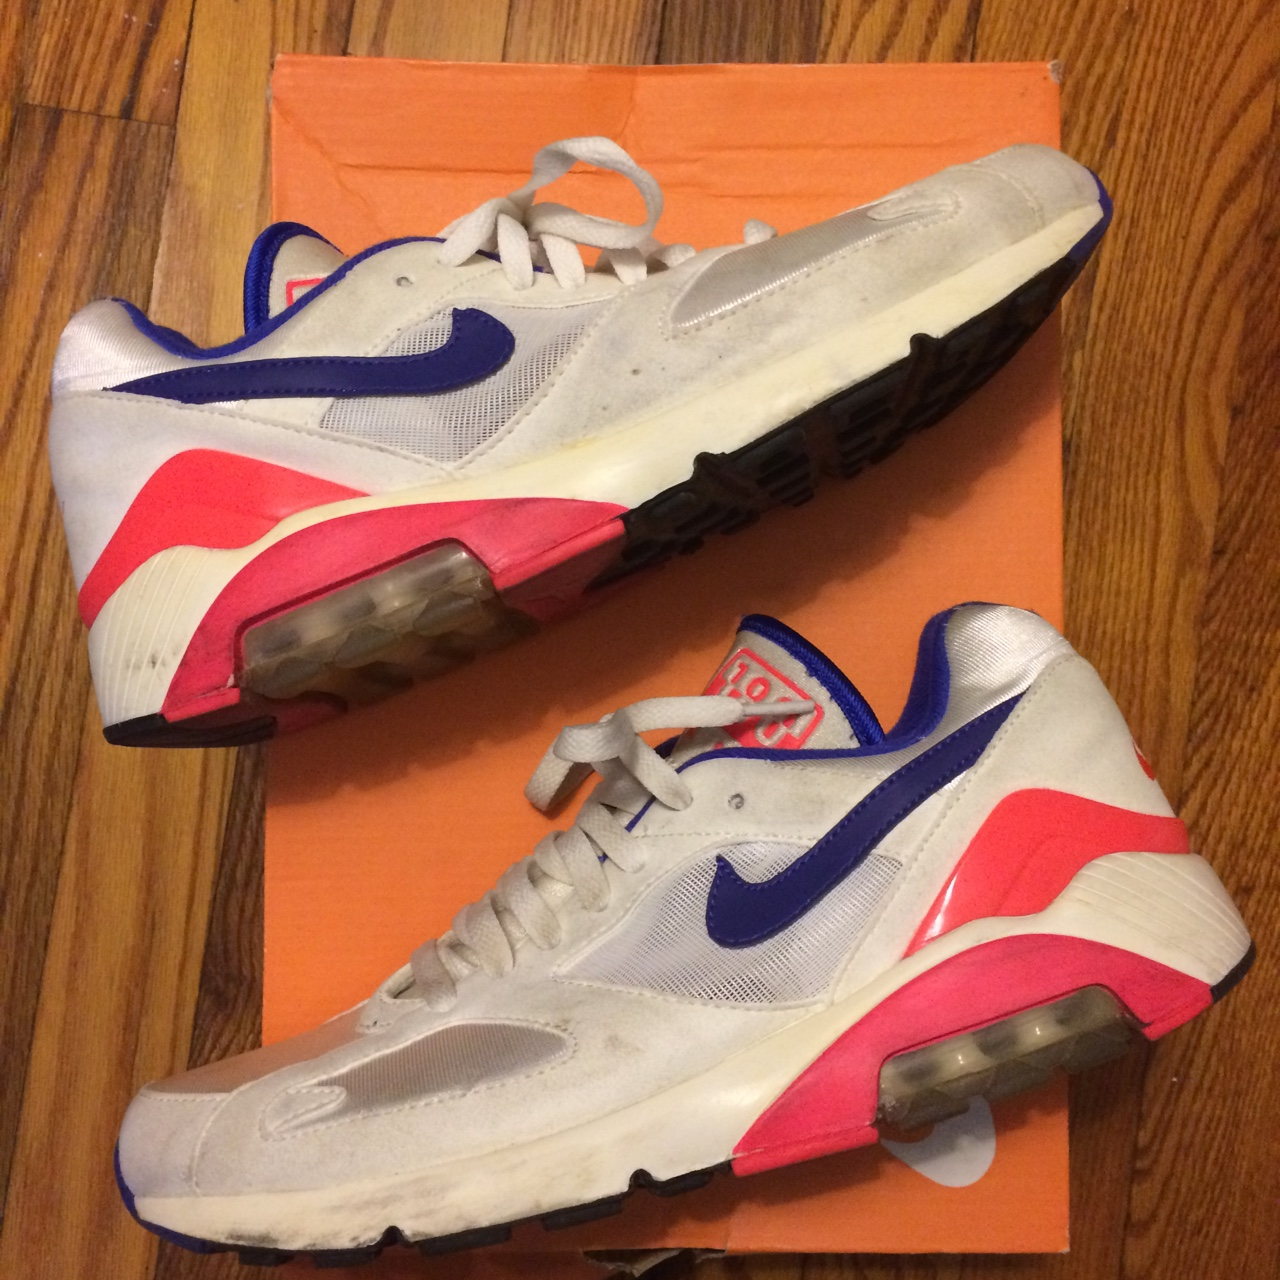 Nike Air Max 180 OG Ultramarine in worn condition. Depop